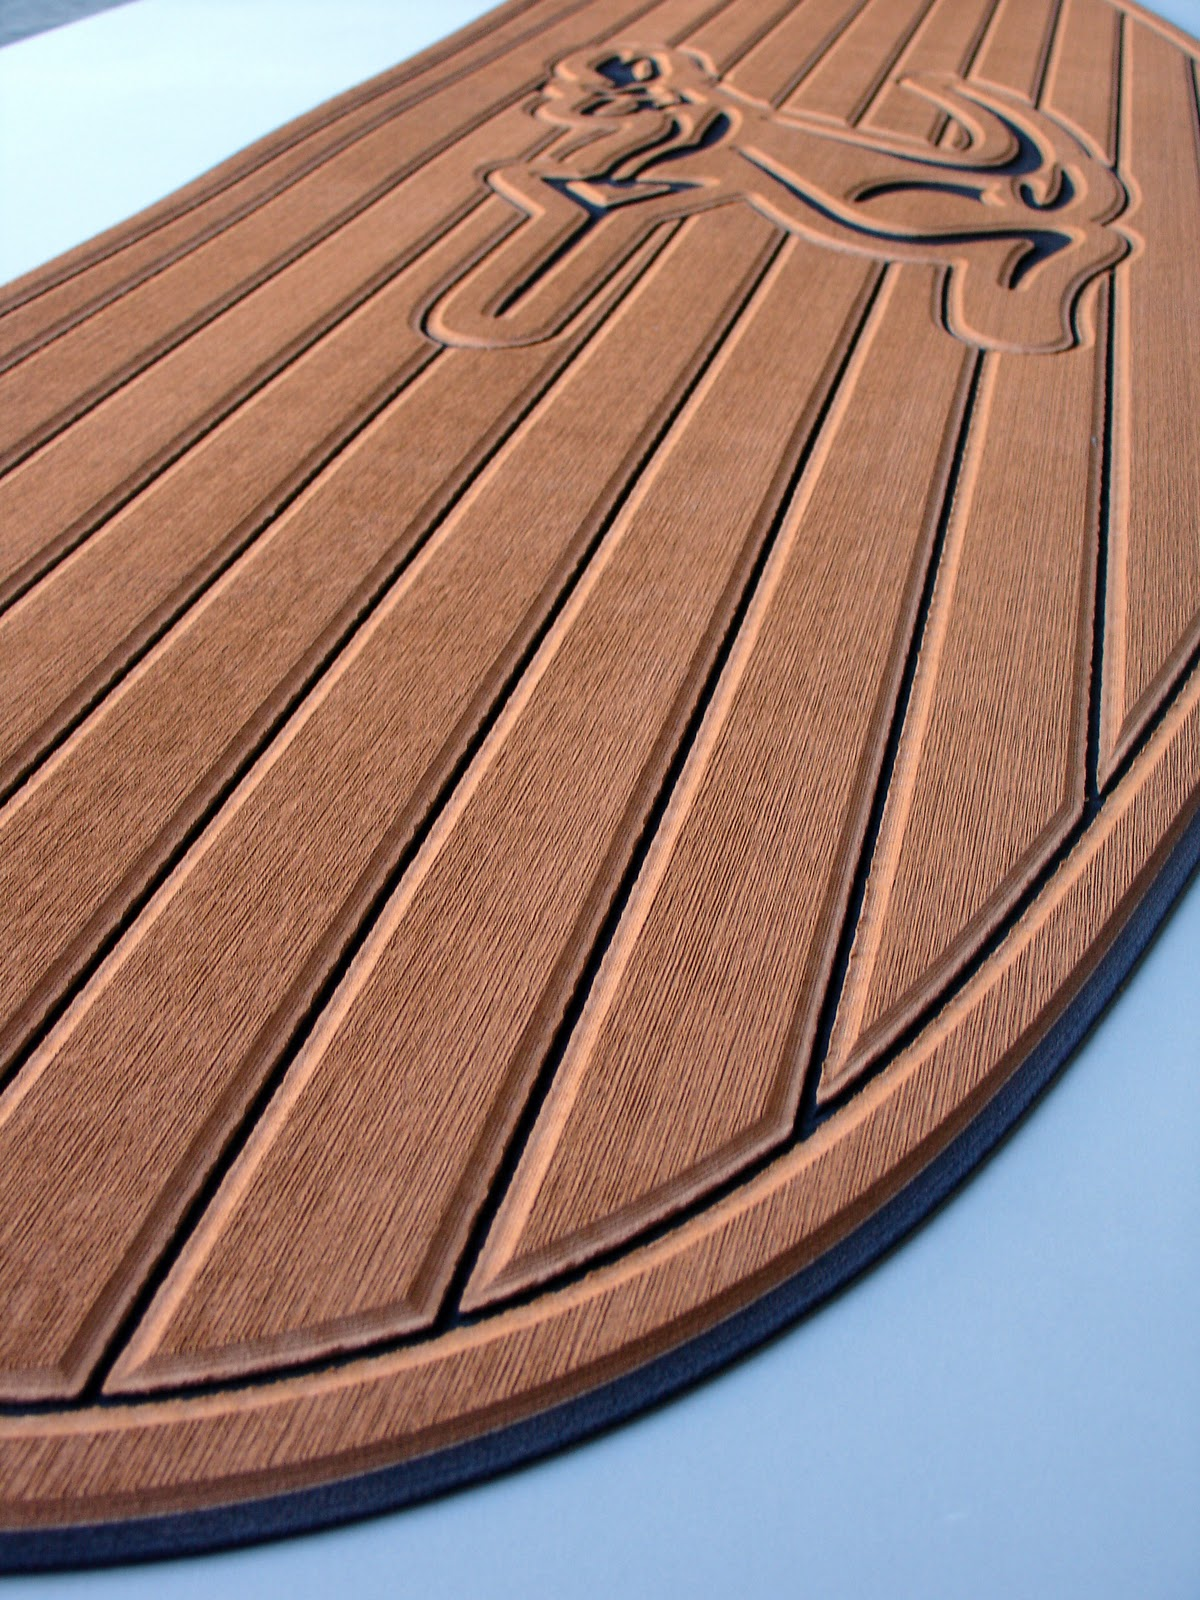 Moomba Roo One Piece Faux Teak Swim Platform Pad Seadek Marine Products